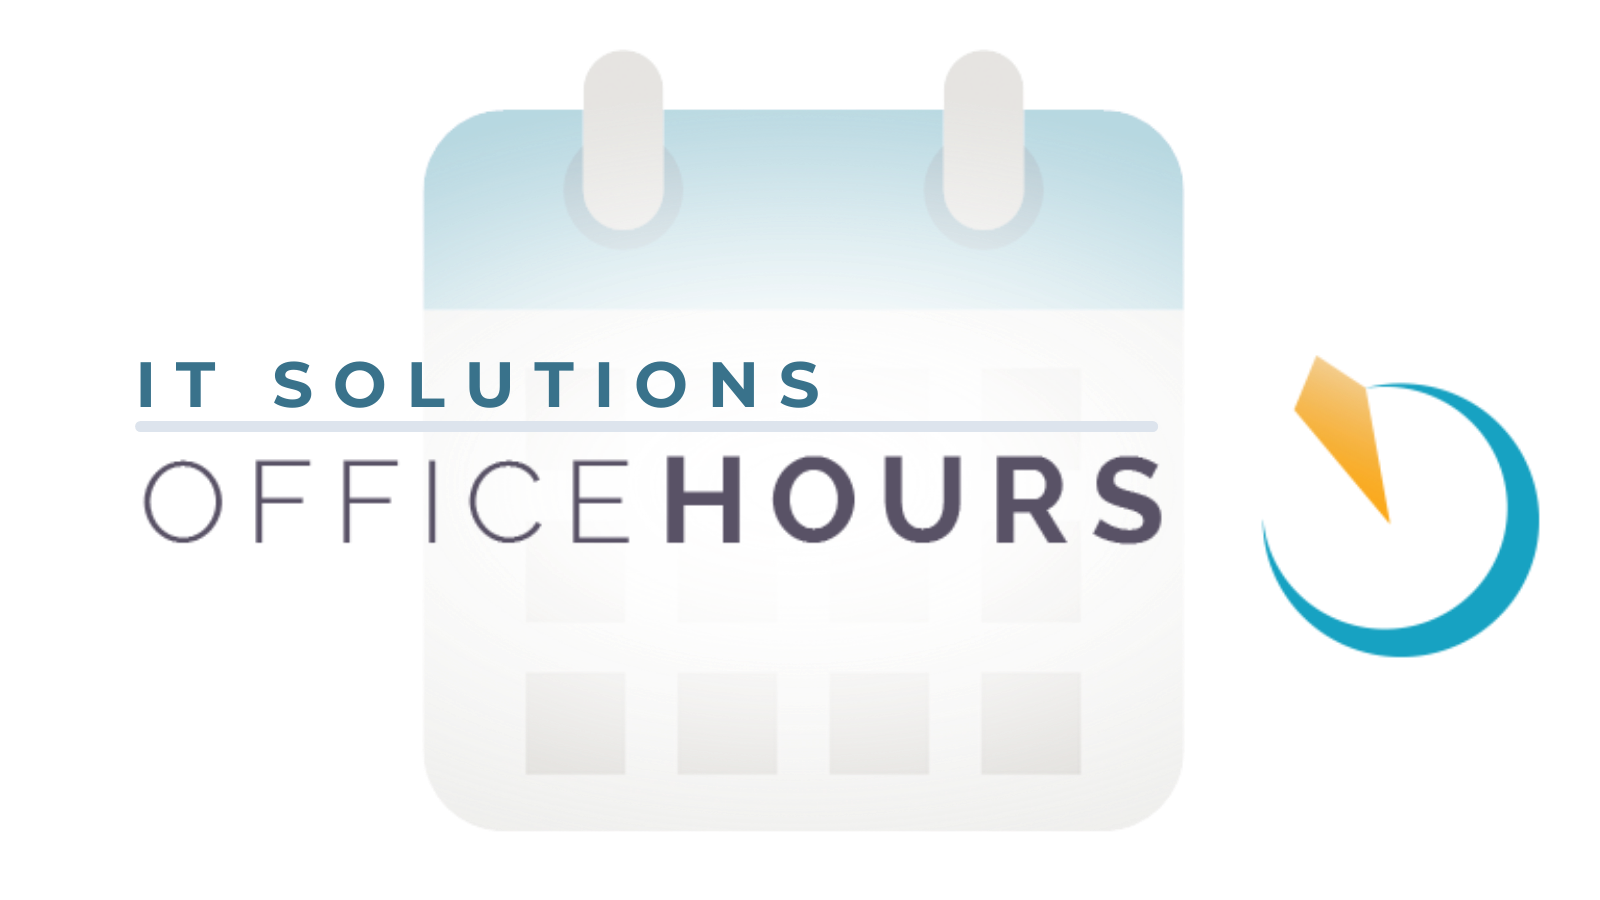 Connect San Diego Innovation Startup Business Venture Capital Entrepreneur Program Office Hours IT Solutions 01